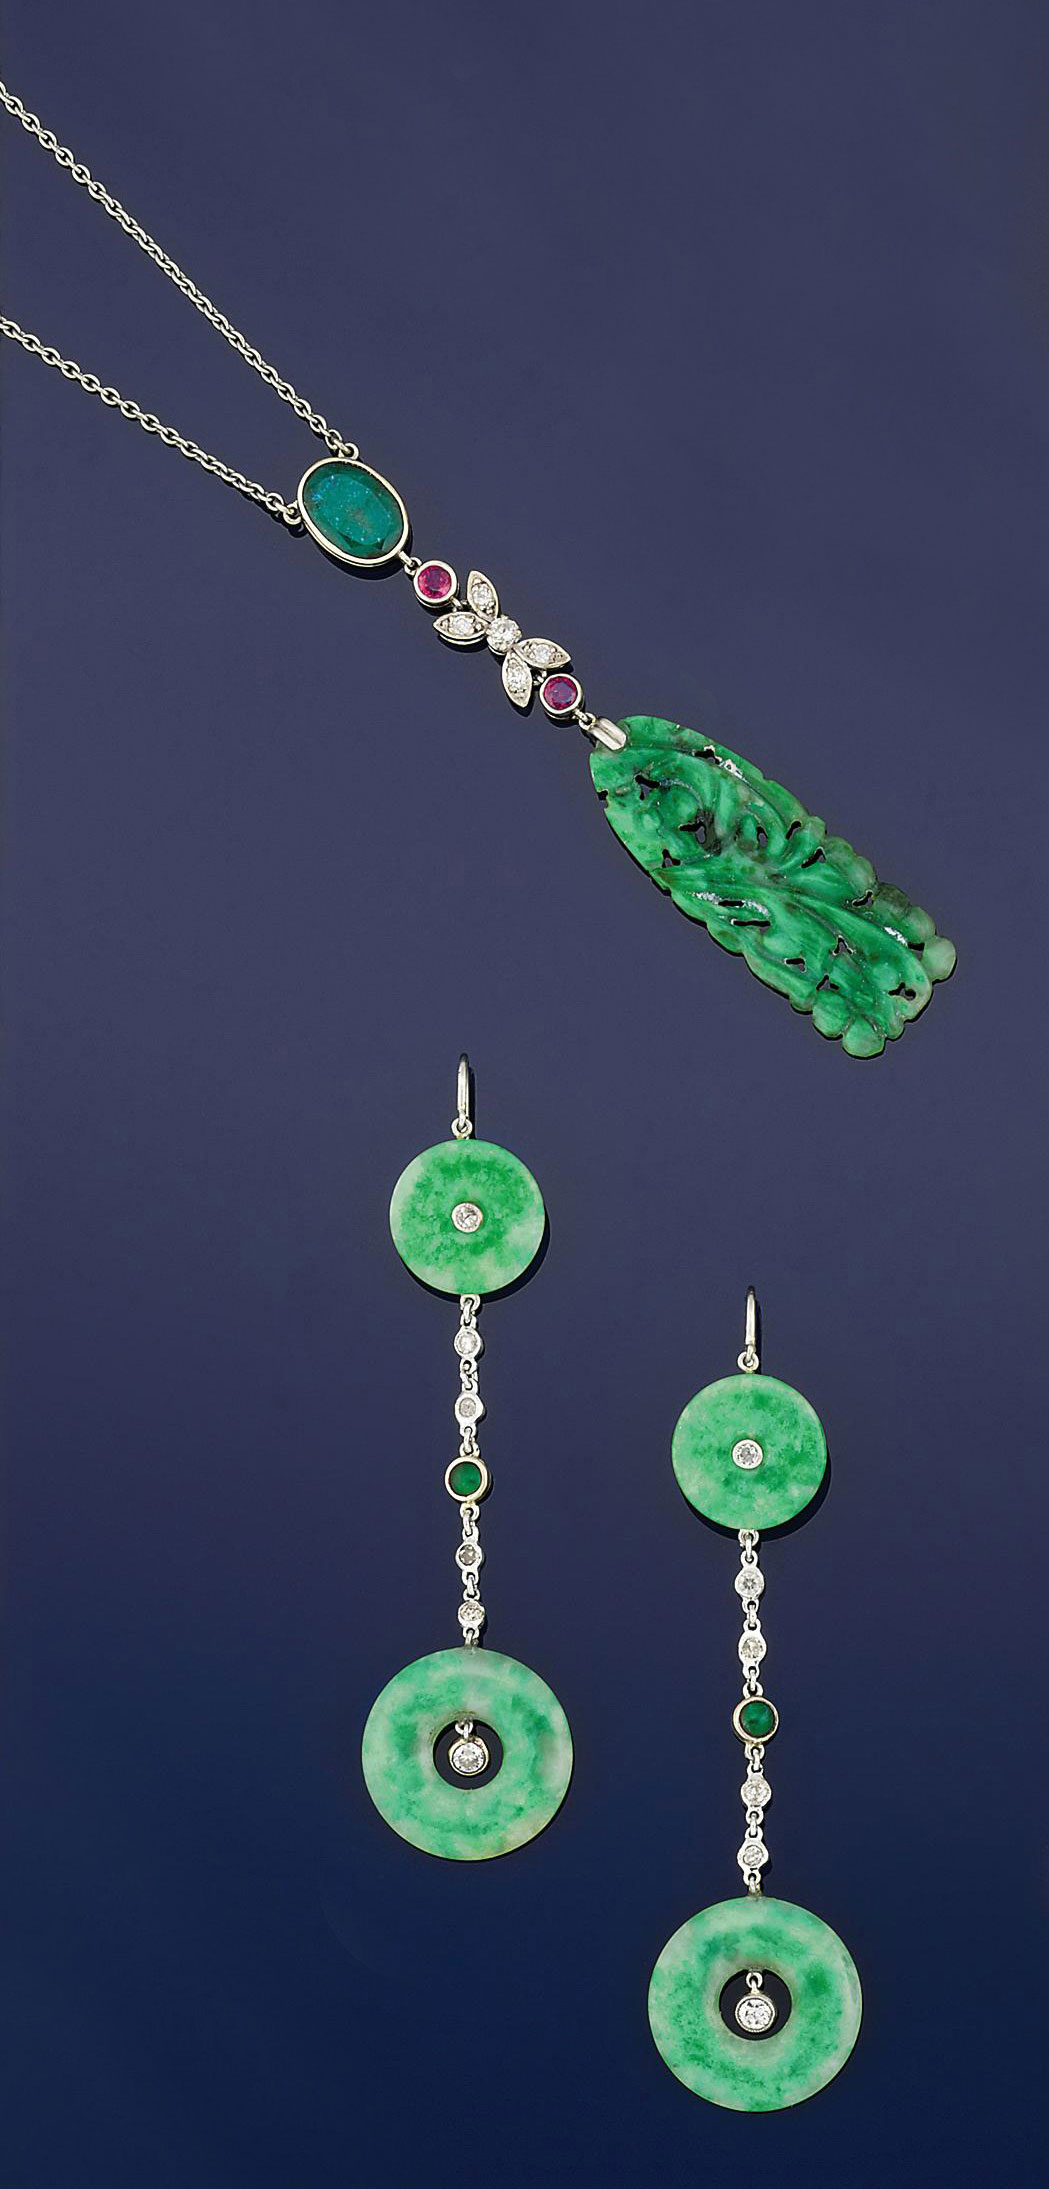 A pair of jadeite jade and diamond earpendants and a jadeite jade, ruby and emerald pendant necklace